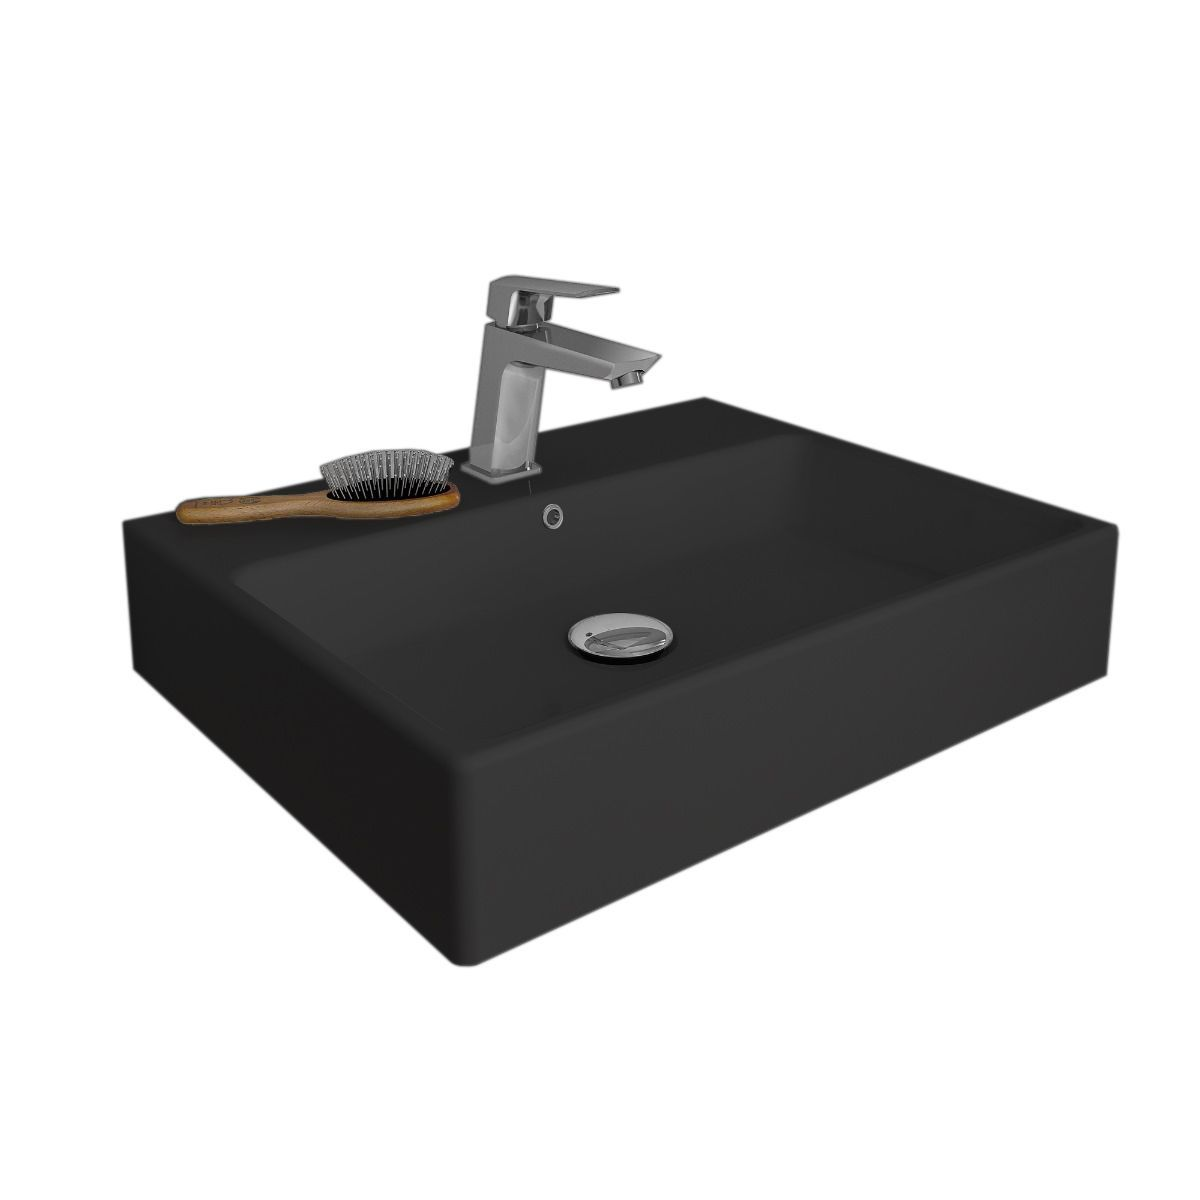 Ws Bath Collections Simple 60a Ada Compliant Wall Mounted Vessel Bathroom Sink In Ceramic White Or Black 23 6 Sink Ceramic Bathroom Sink Modern Bathroom Sink